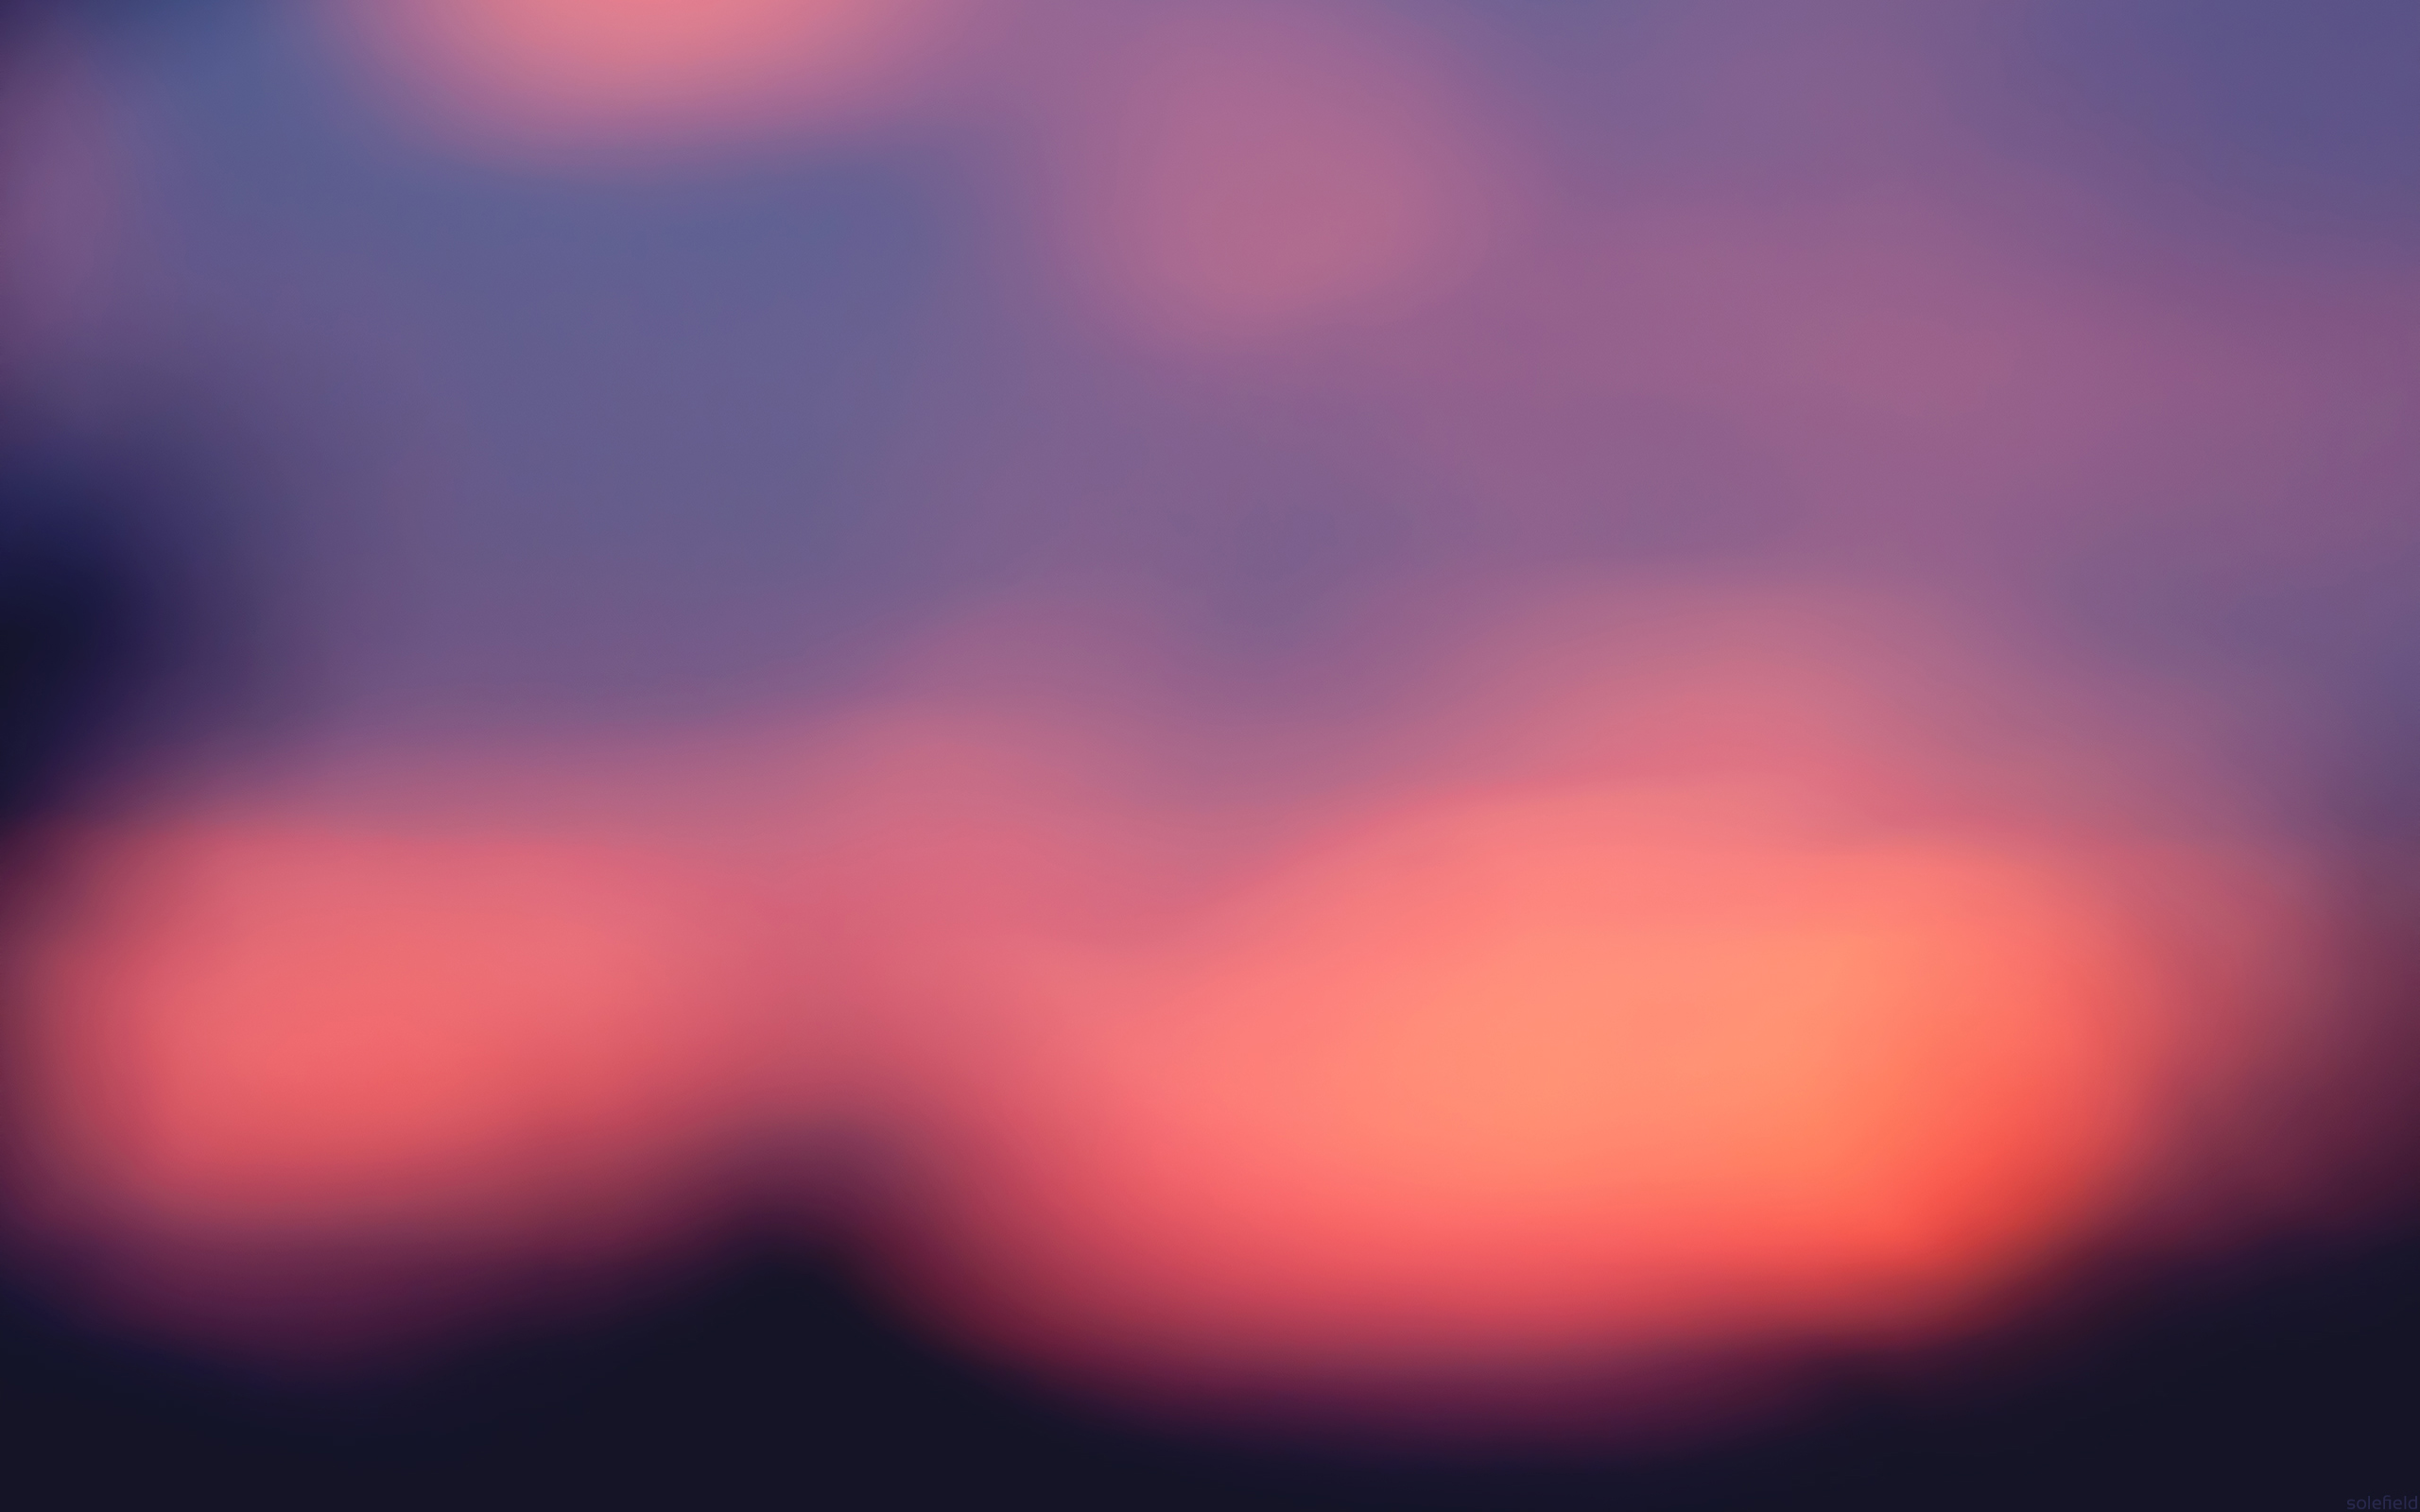 Abstract Sunset in purple and pink